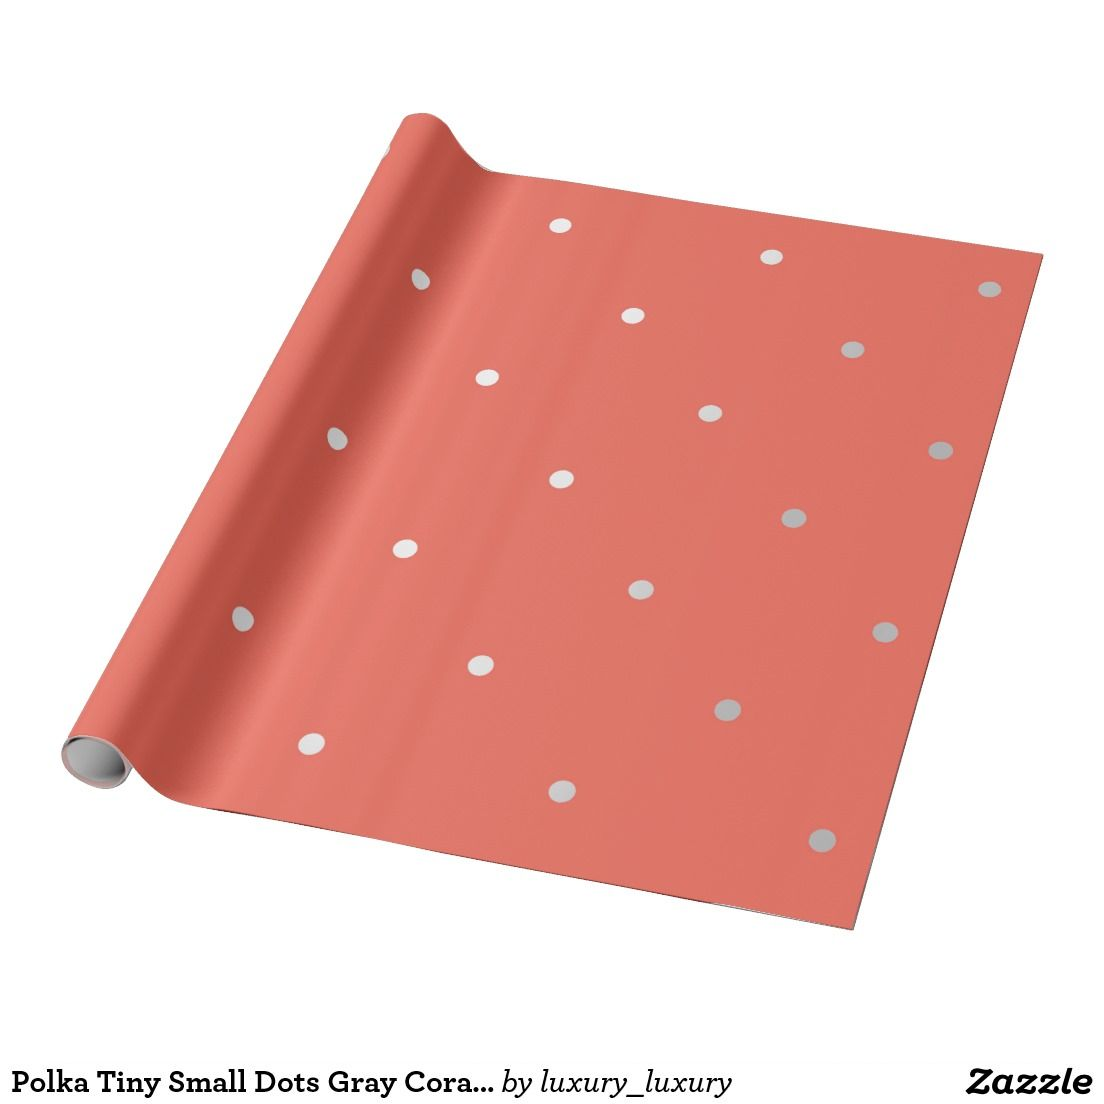 Polka Tiny Small Dots Gray Coral Orange Red Wrapping Paper